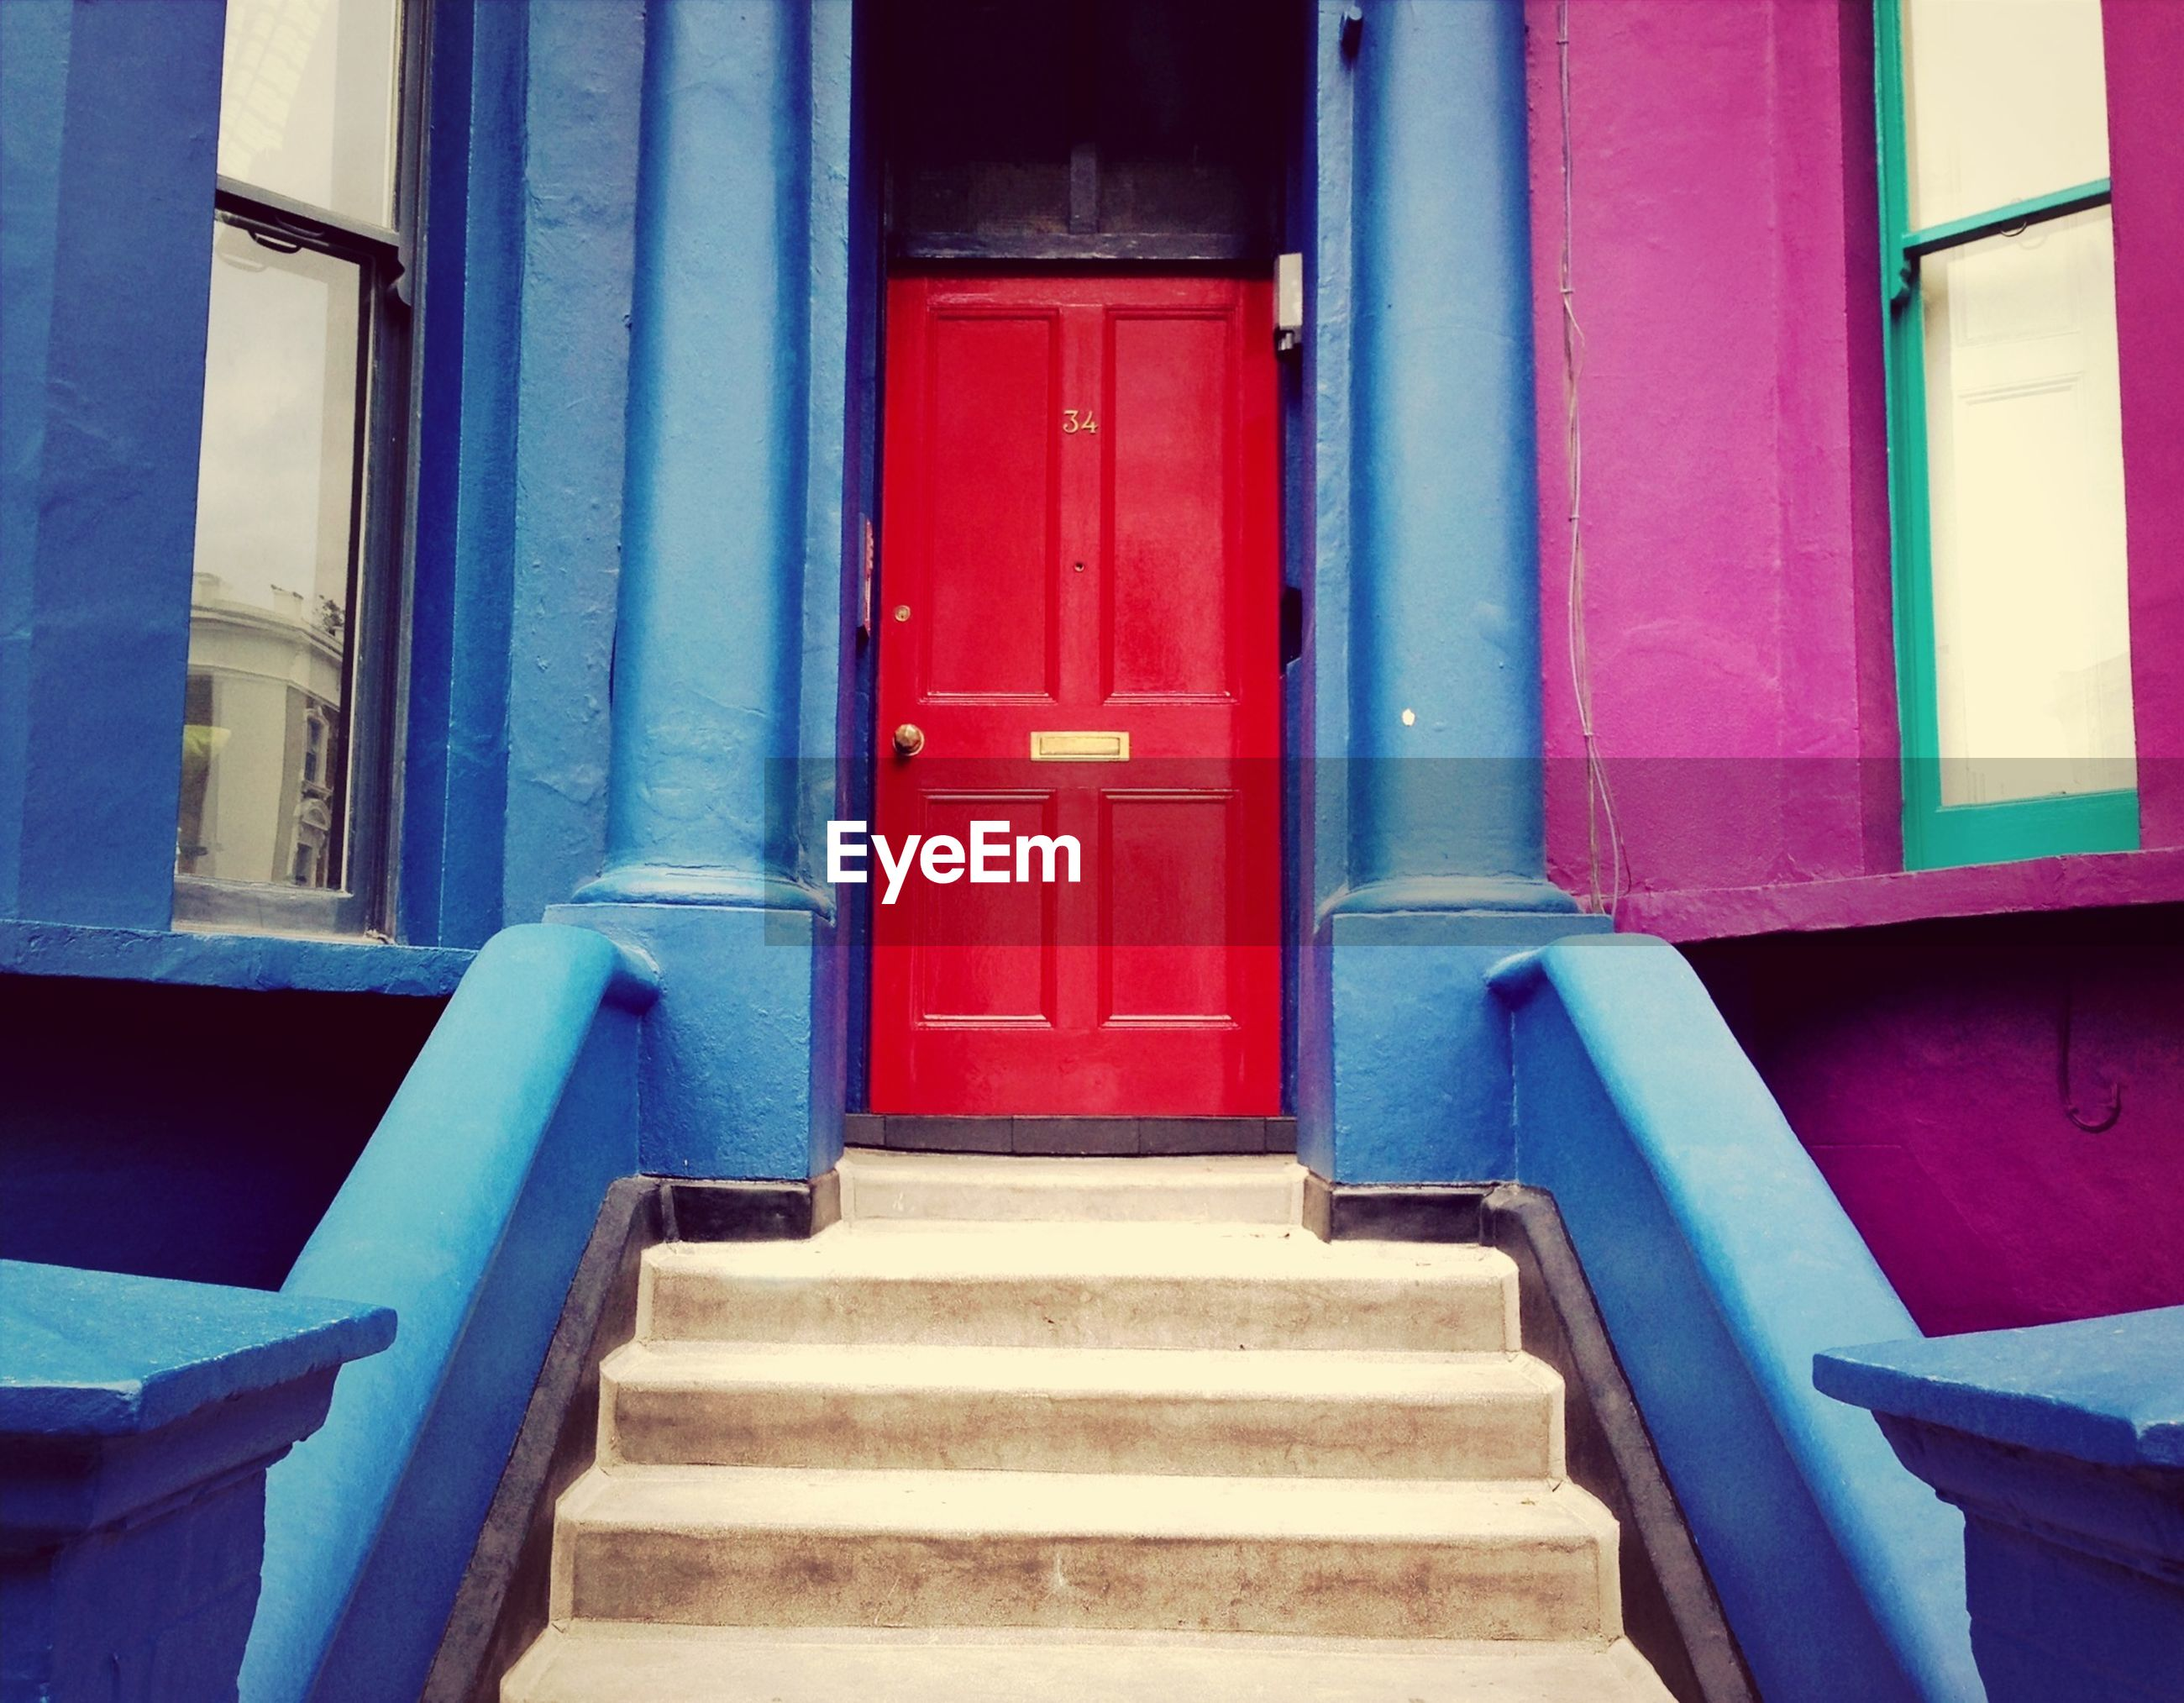 built structure, architecture, building exterior, steps, door, staircase, railing, steps and staircases, blue, red, closed, entrance, house, stairs, window, residential structure, building, day, no people, wall